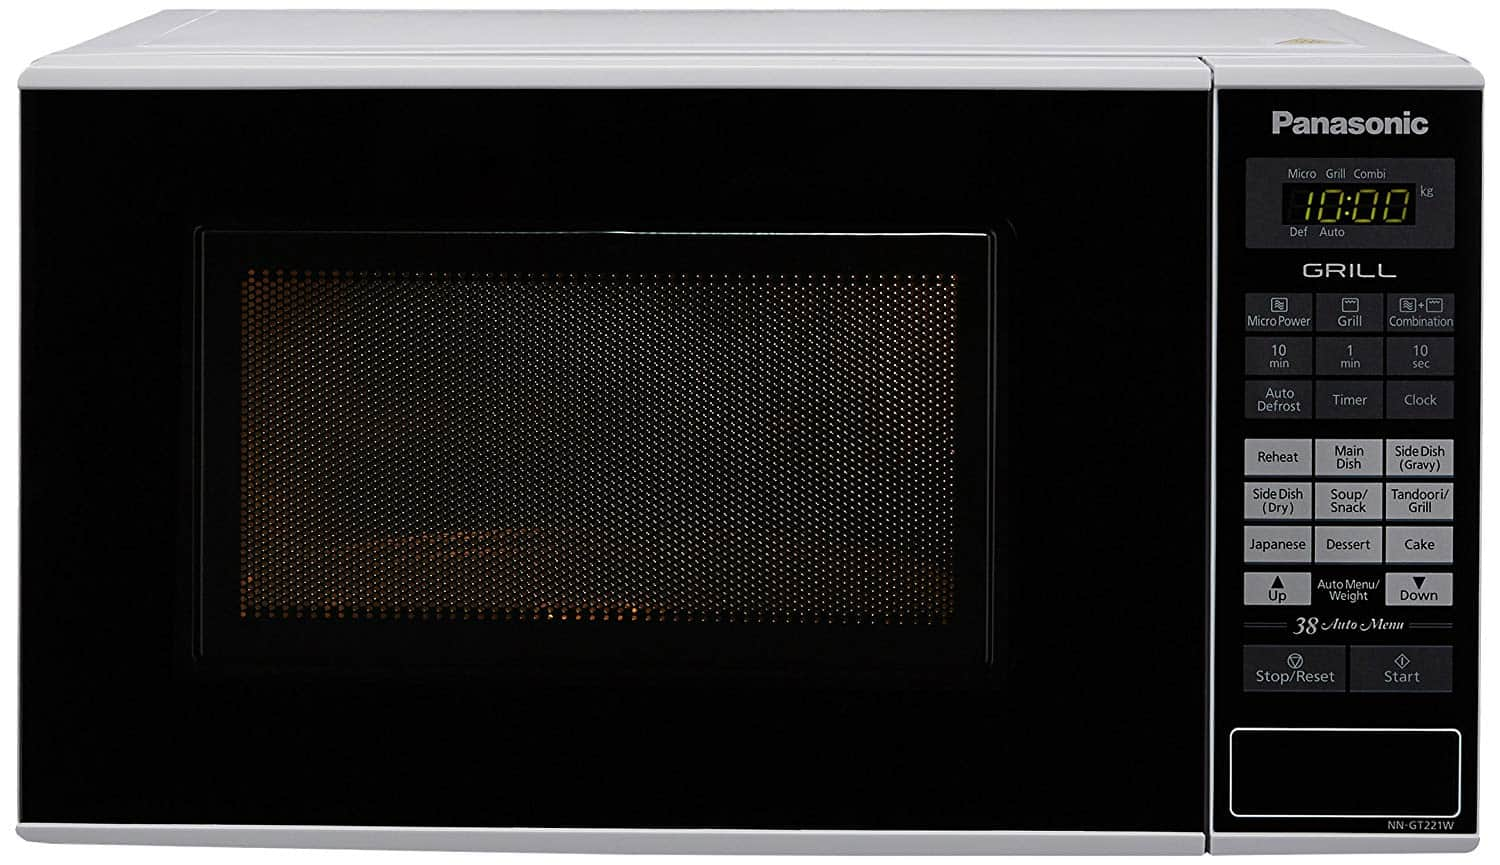 Panasonic 20 L Grill Microwave Oven